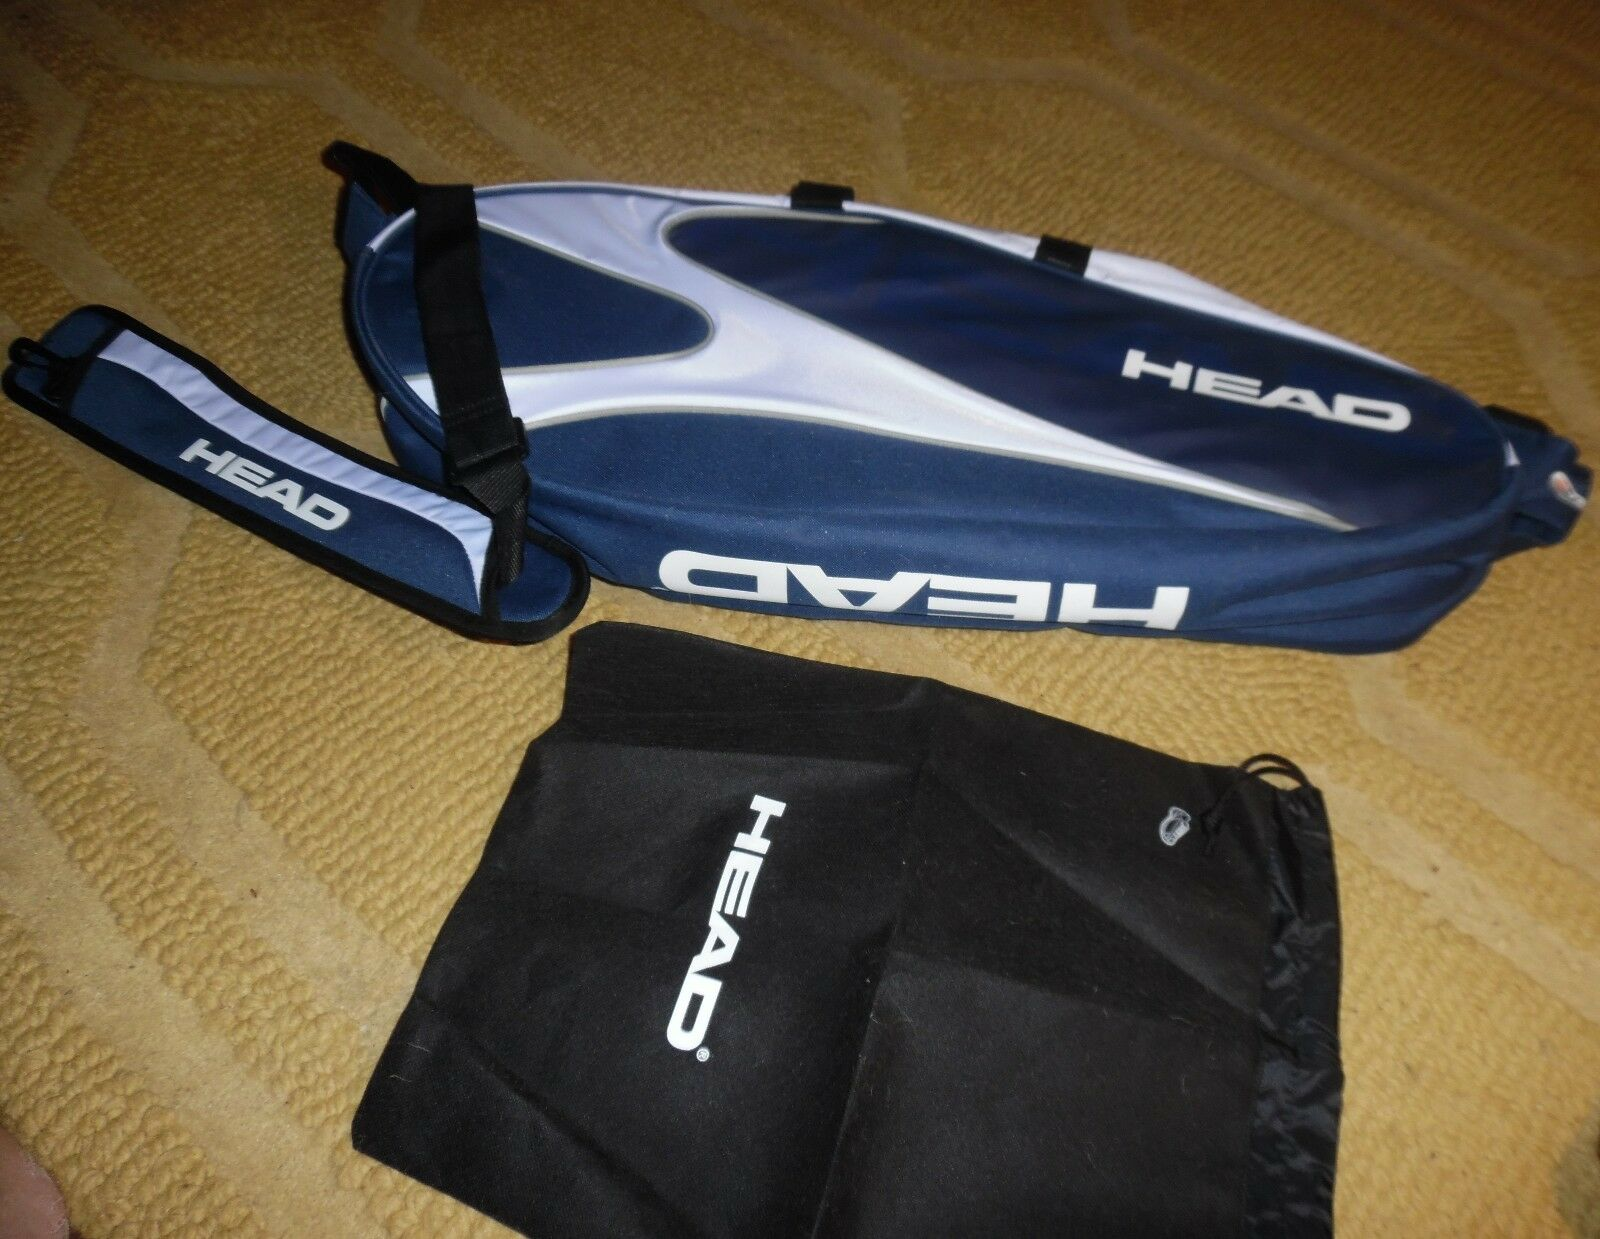 HEAD TENNIS BAG APT SUPERCOMB COMPLETE UNUSED HAS COOLEARTH TAGS ATTACHED